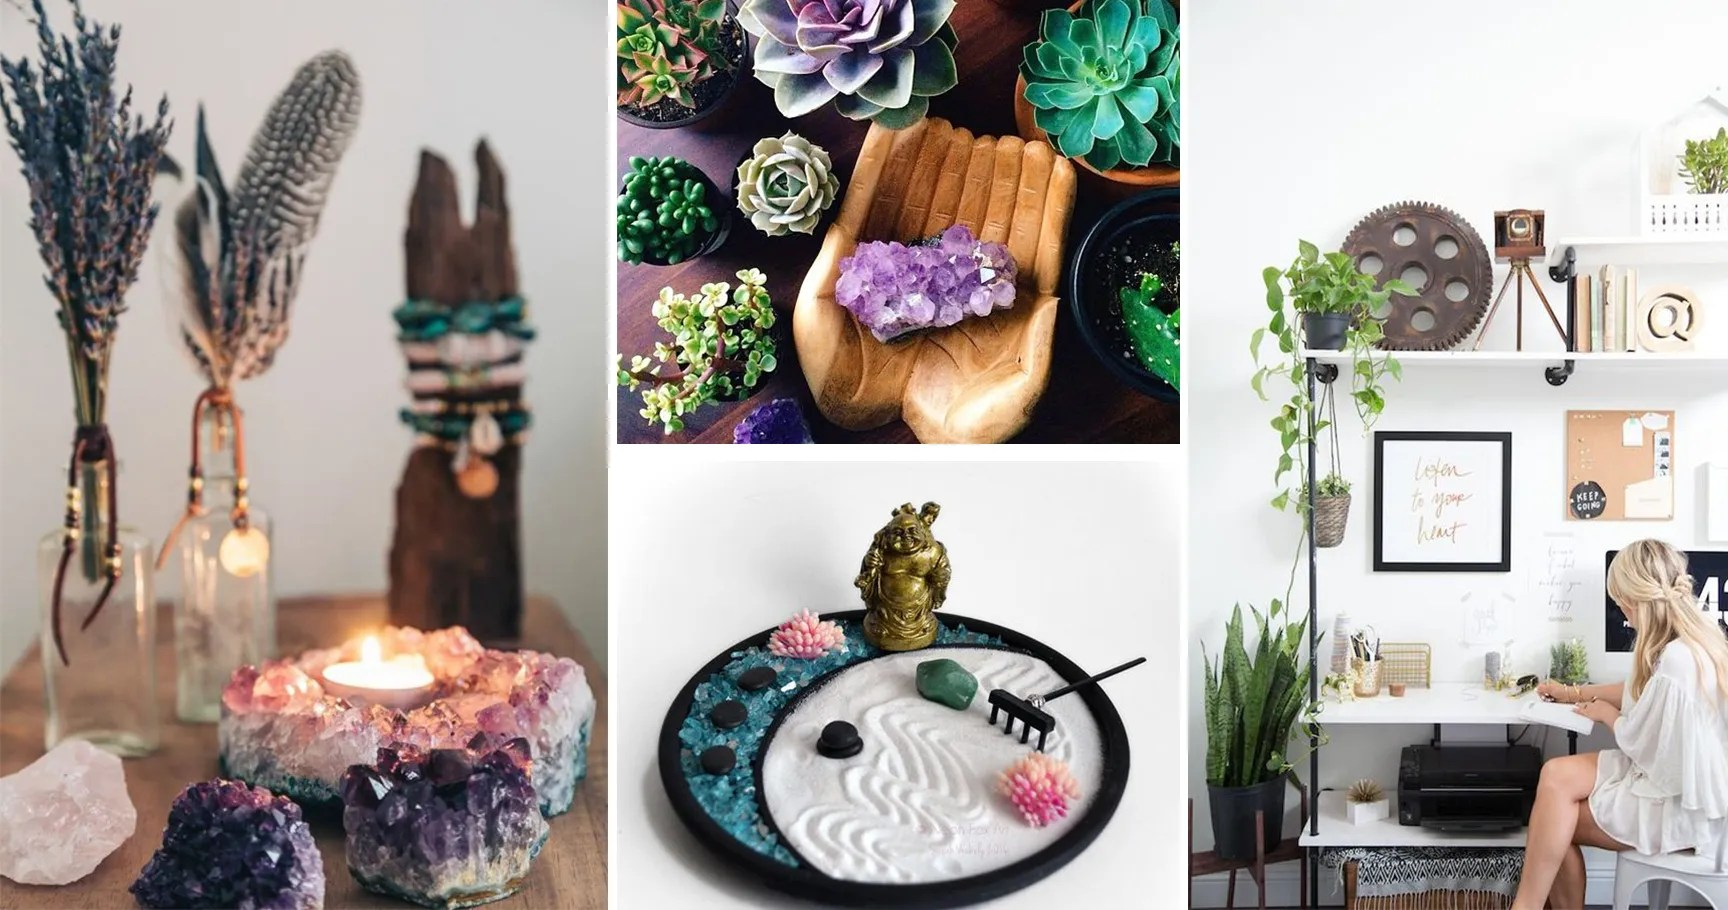 Office Zen Garden 15 Products That Will Make Your Office Feel Zen Af Thethings